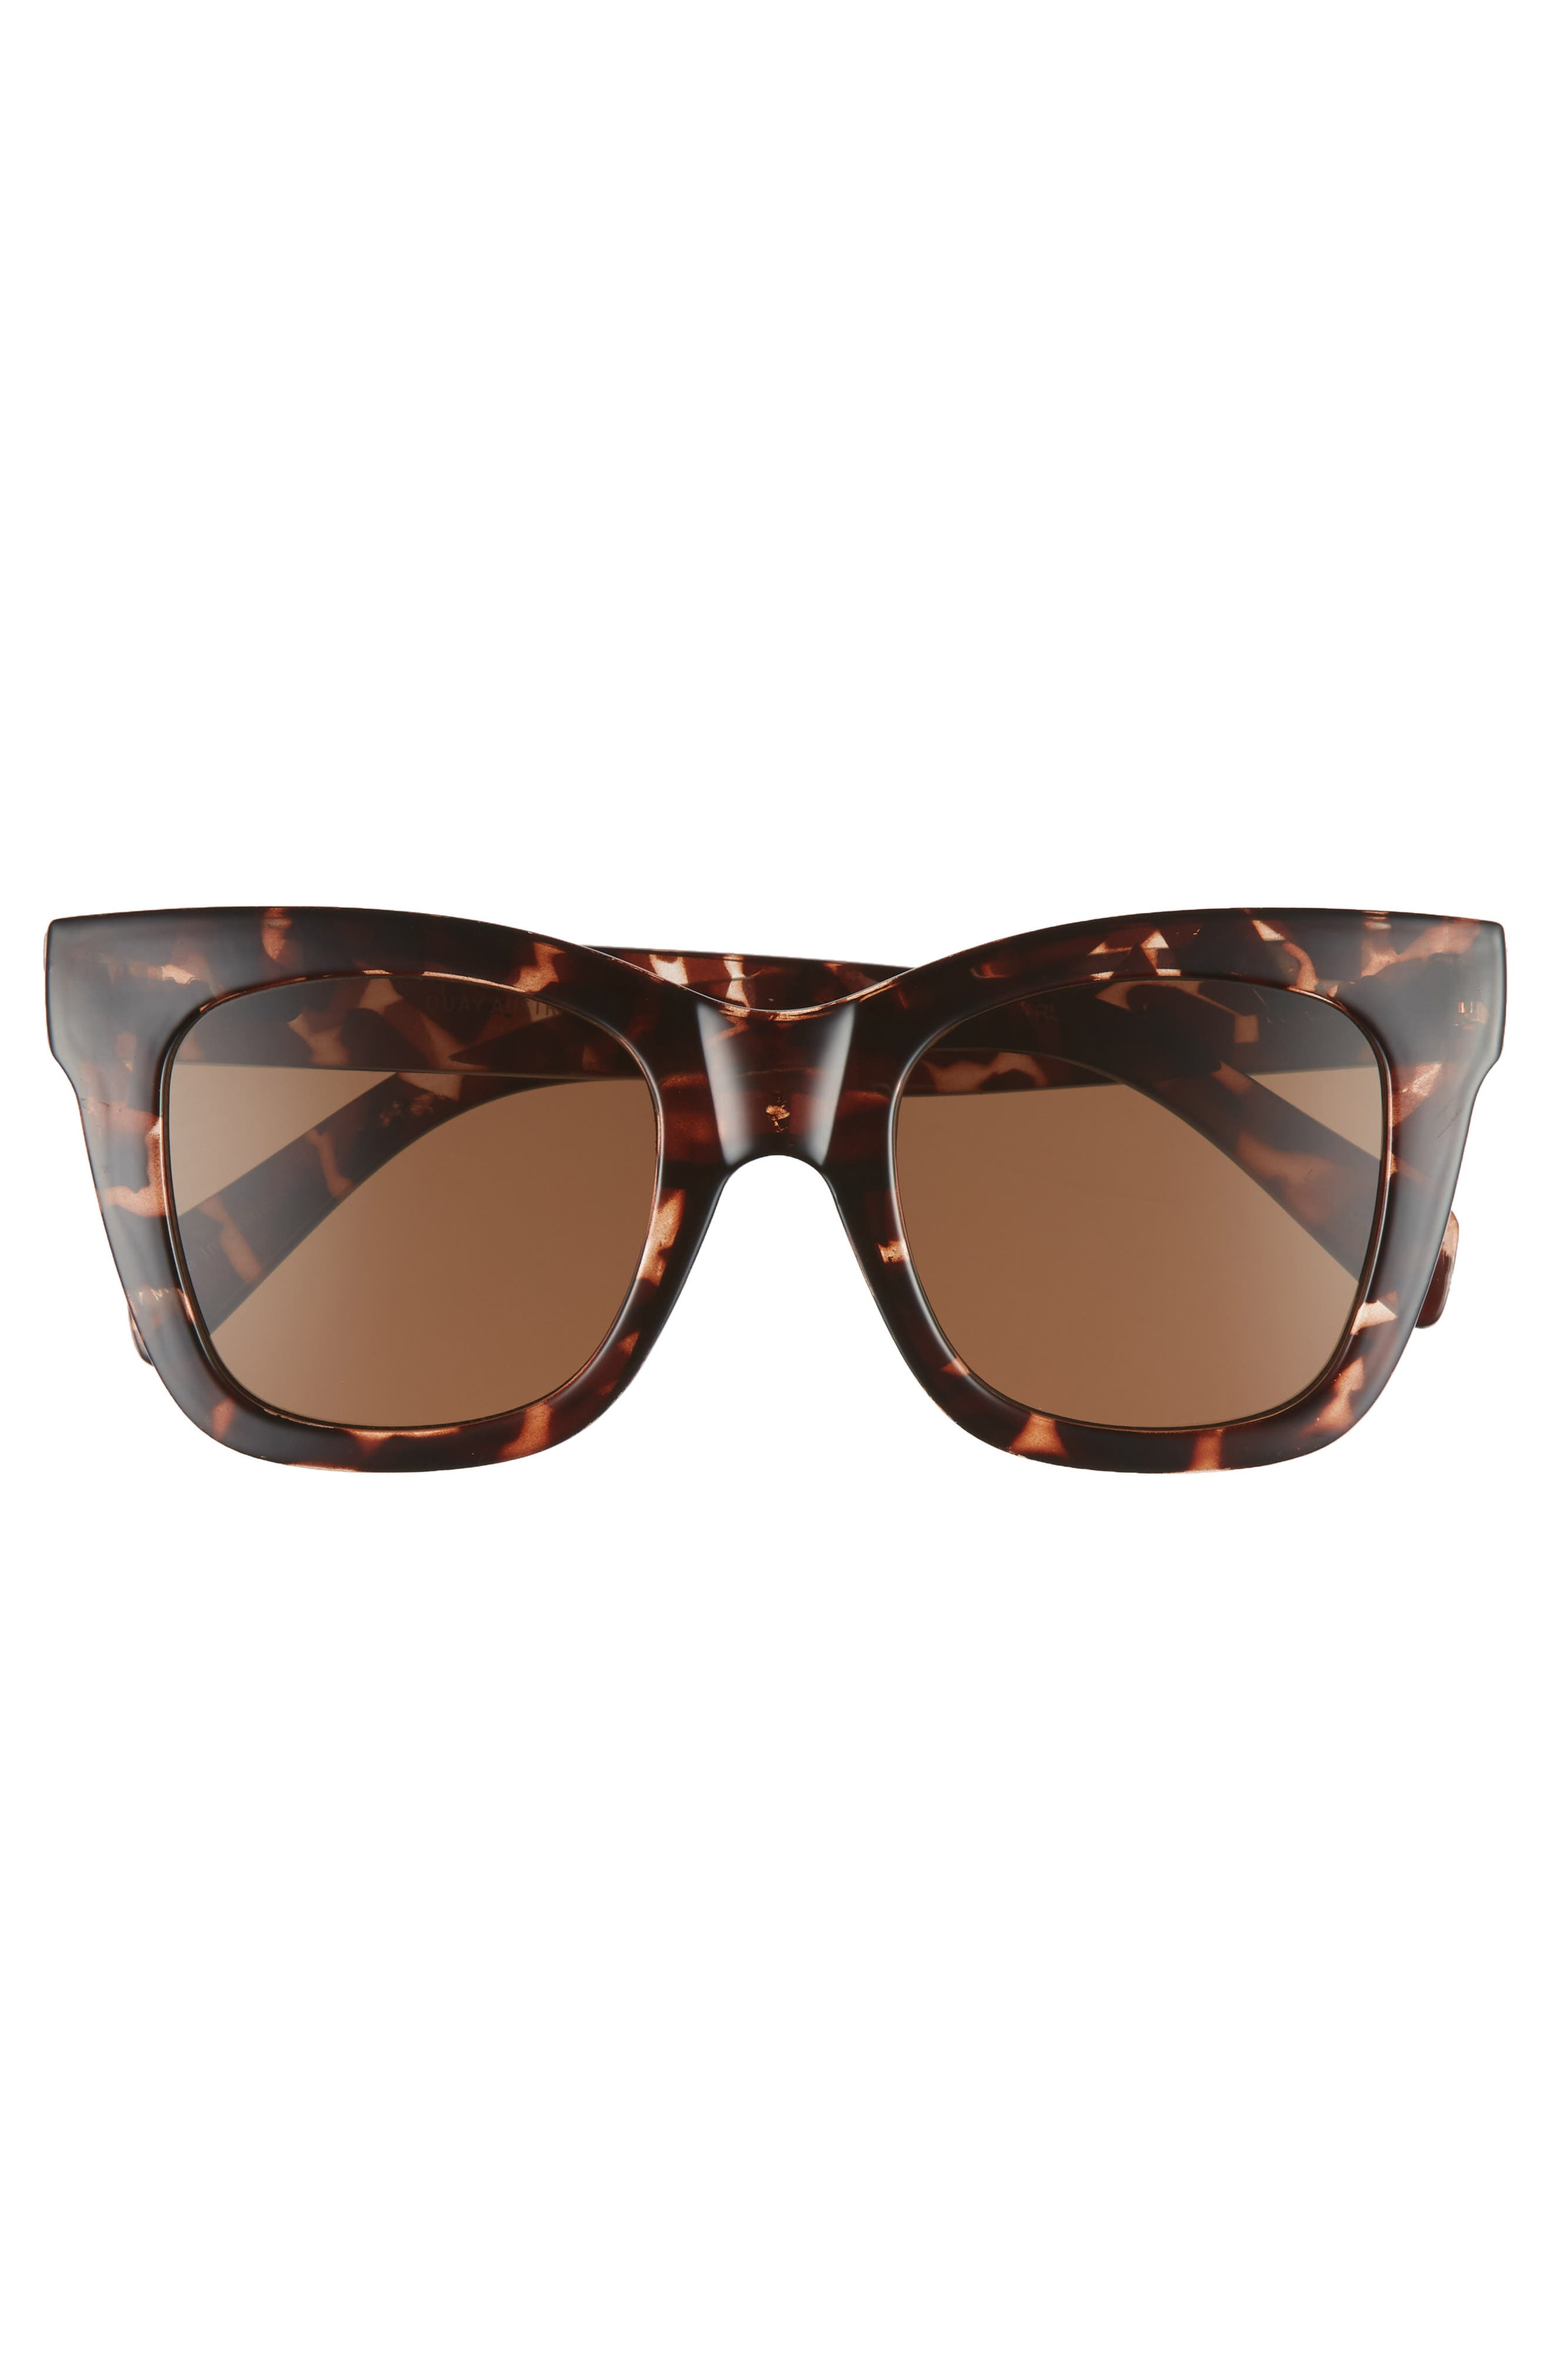 After Hours 50mm Square Sunglasses,                             Alternate thumbnail 3, color,                             TORT / BROWN